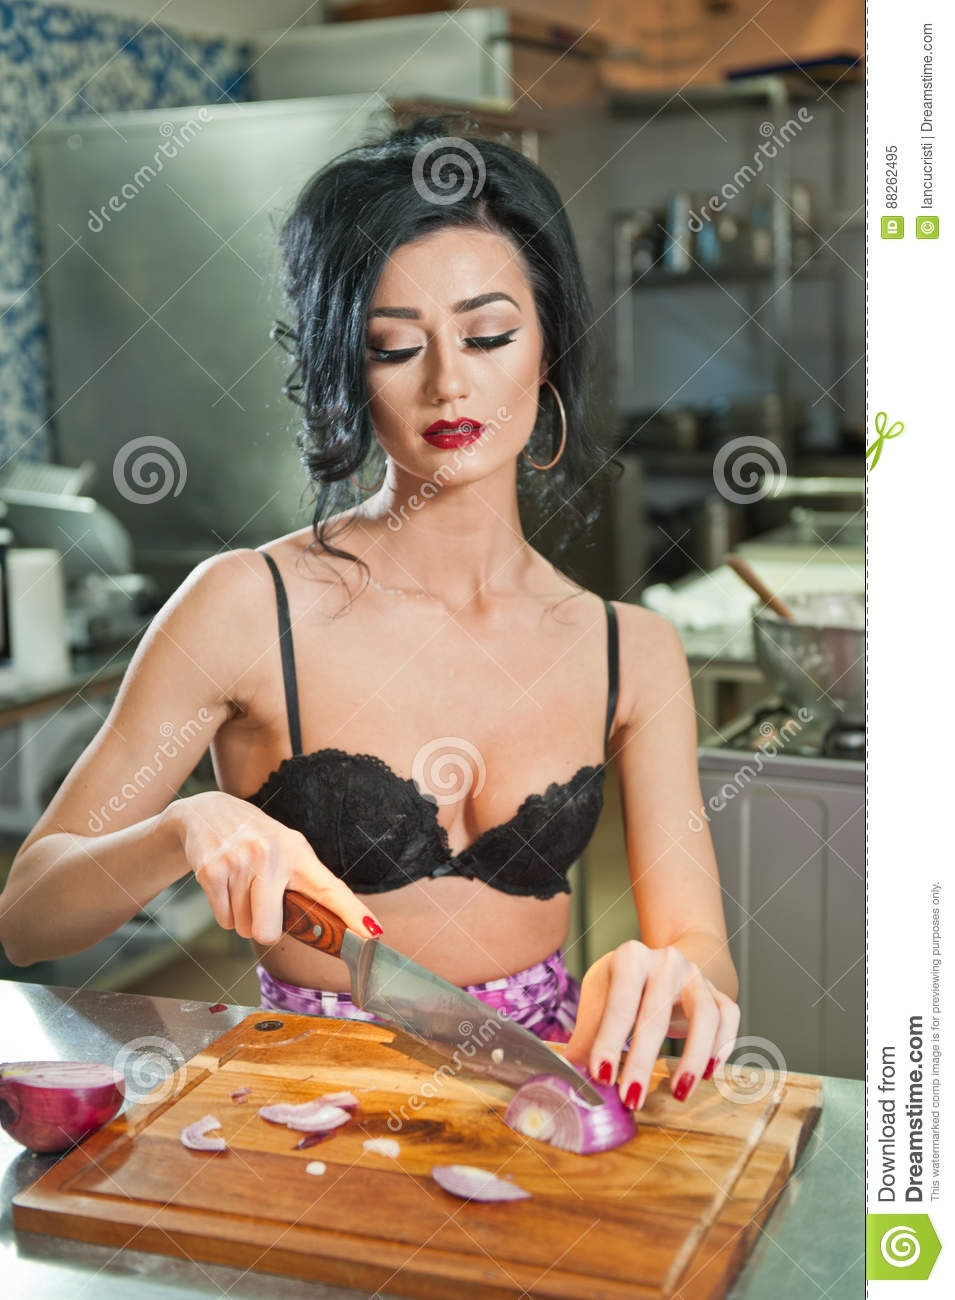 84317c4b29c60 Beautiful and woman in the kitchen. Smiling brunette preparing food. Young  girl wearing black bra cutting some onions on the wooden board.cute sensual  young ...